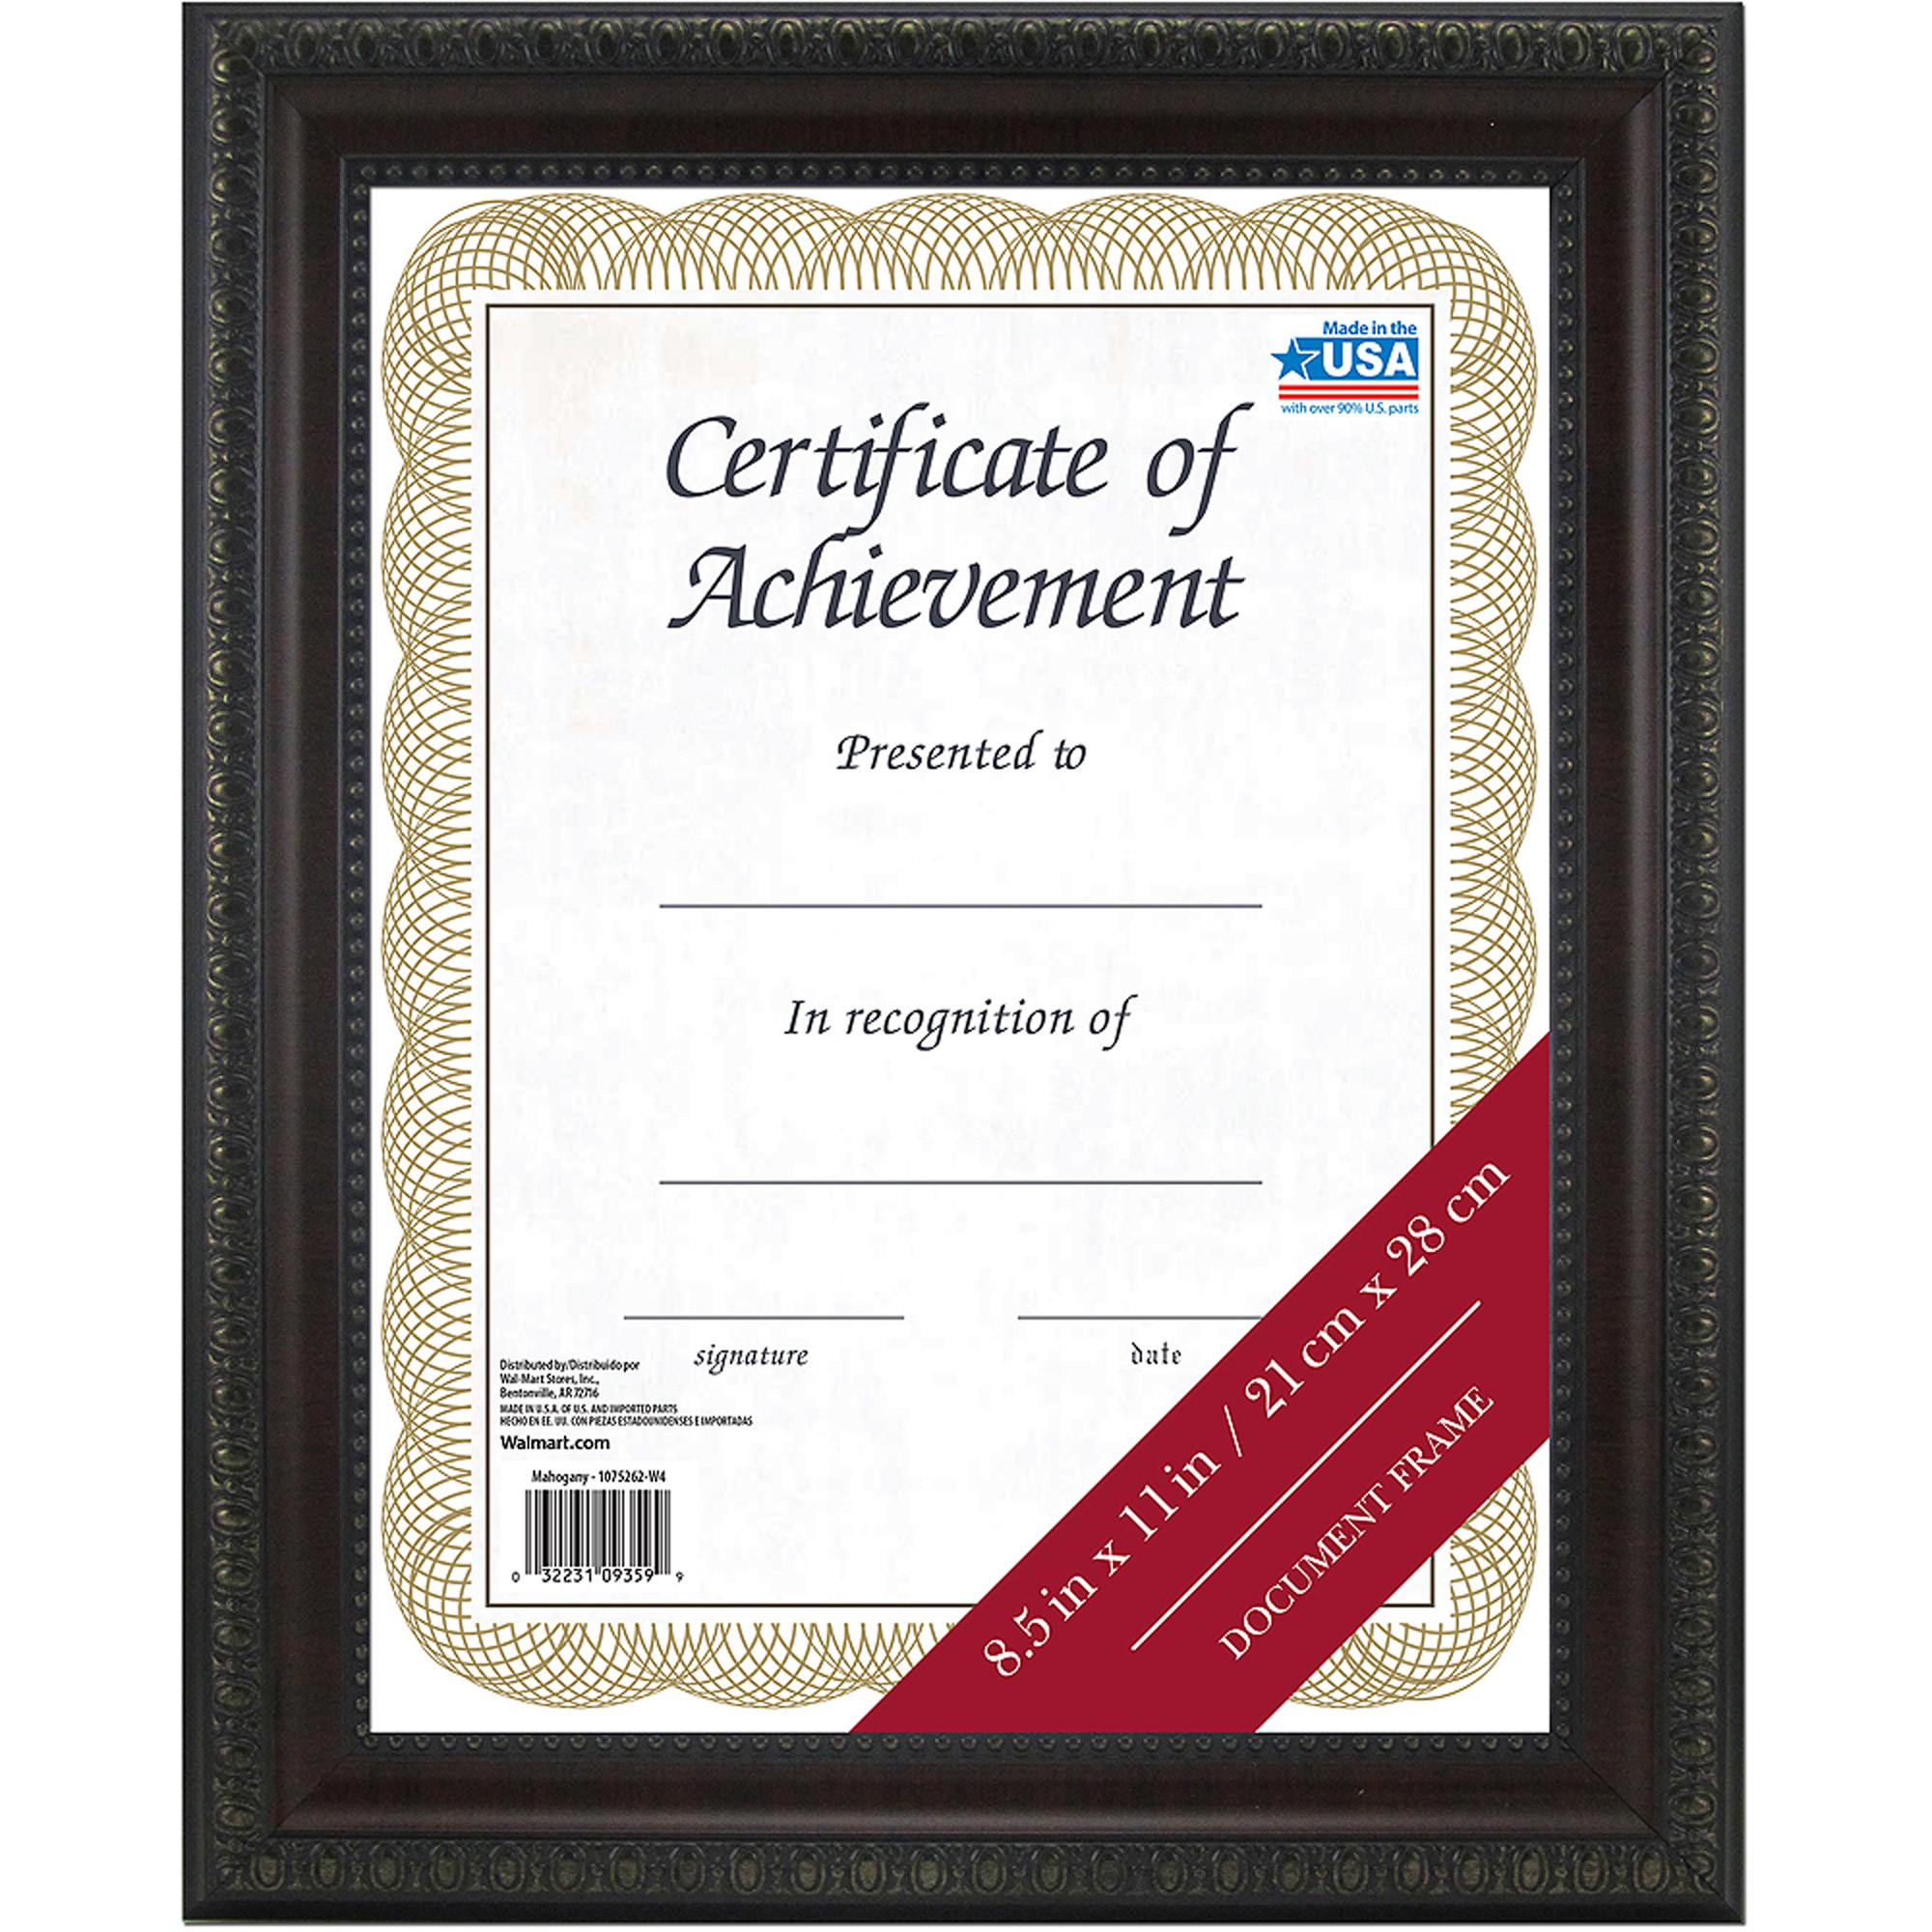 Mainstays 8.5x11 Mahogany Document Frame - Walmart.com